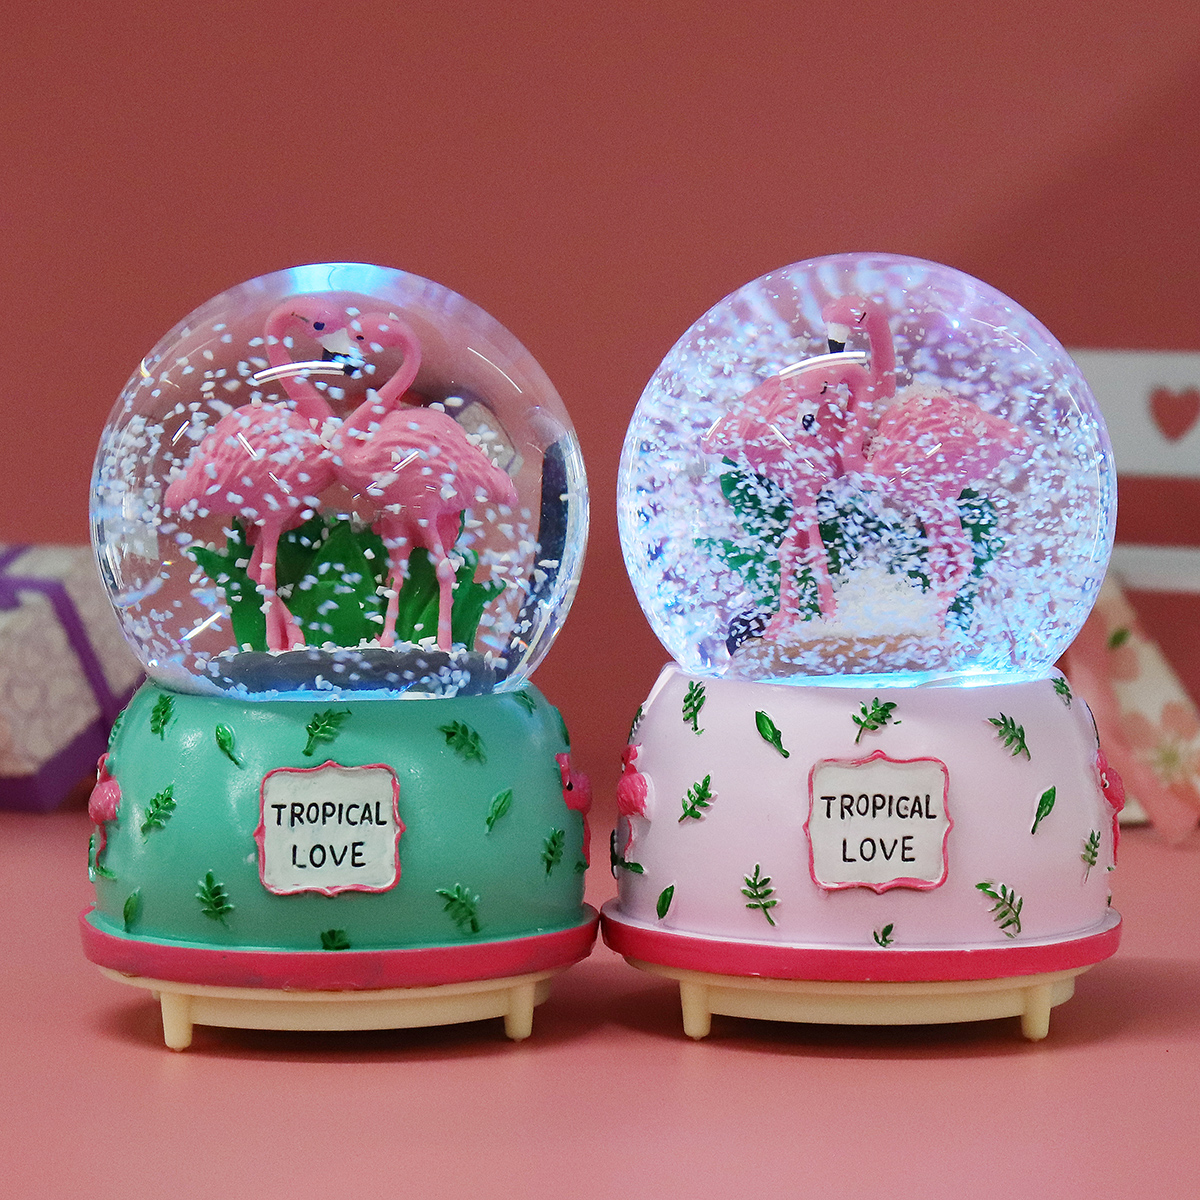 Creative Crystal Flamingo Musical Snow Globe Music Box Valentine's Birthday Gift